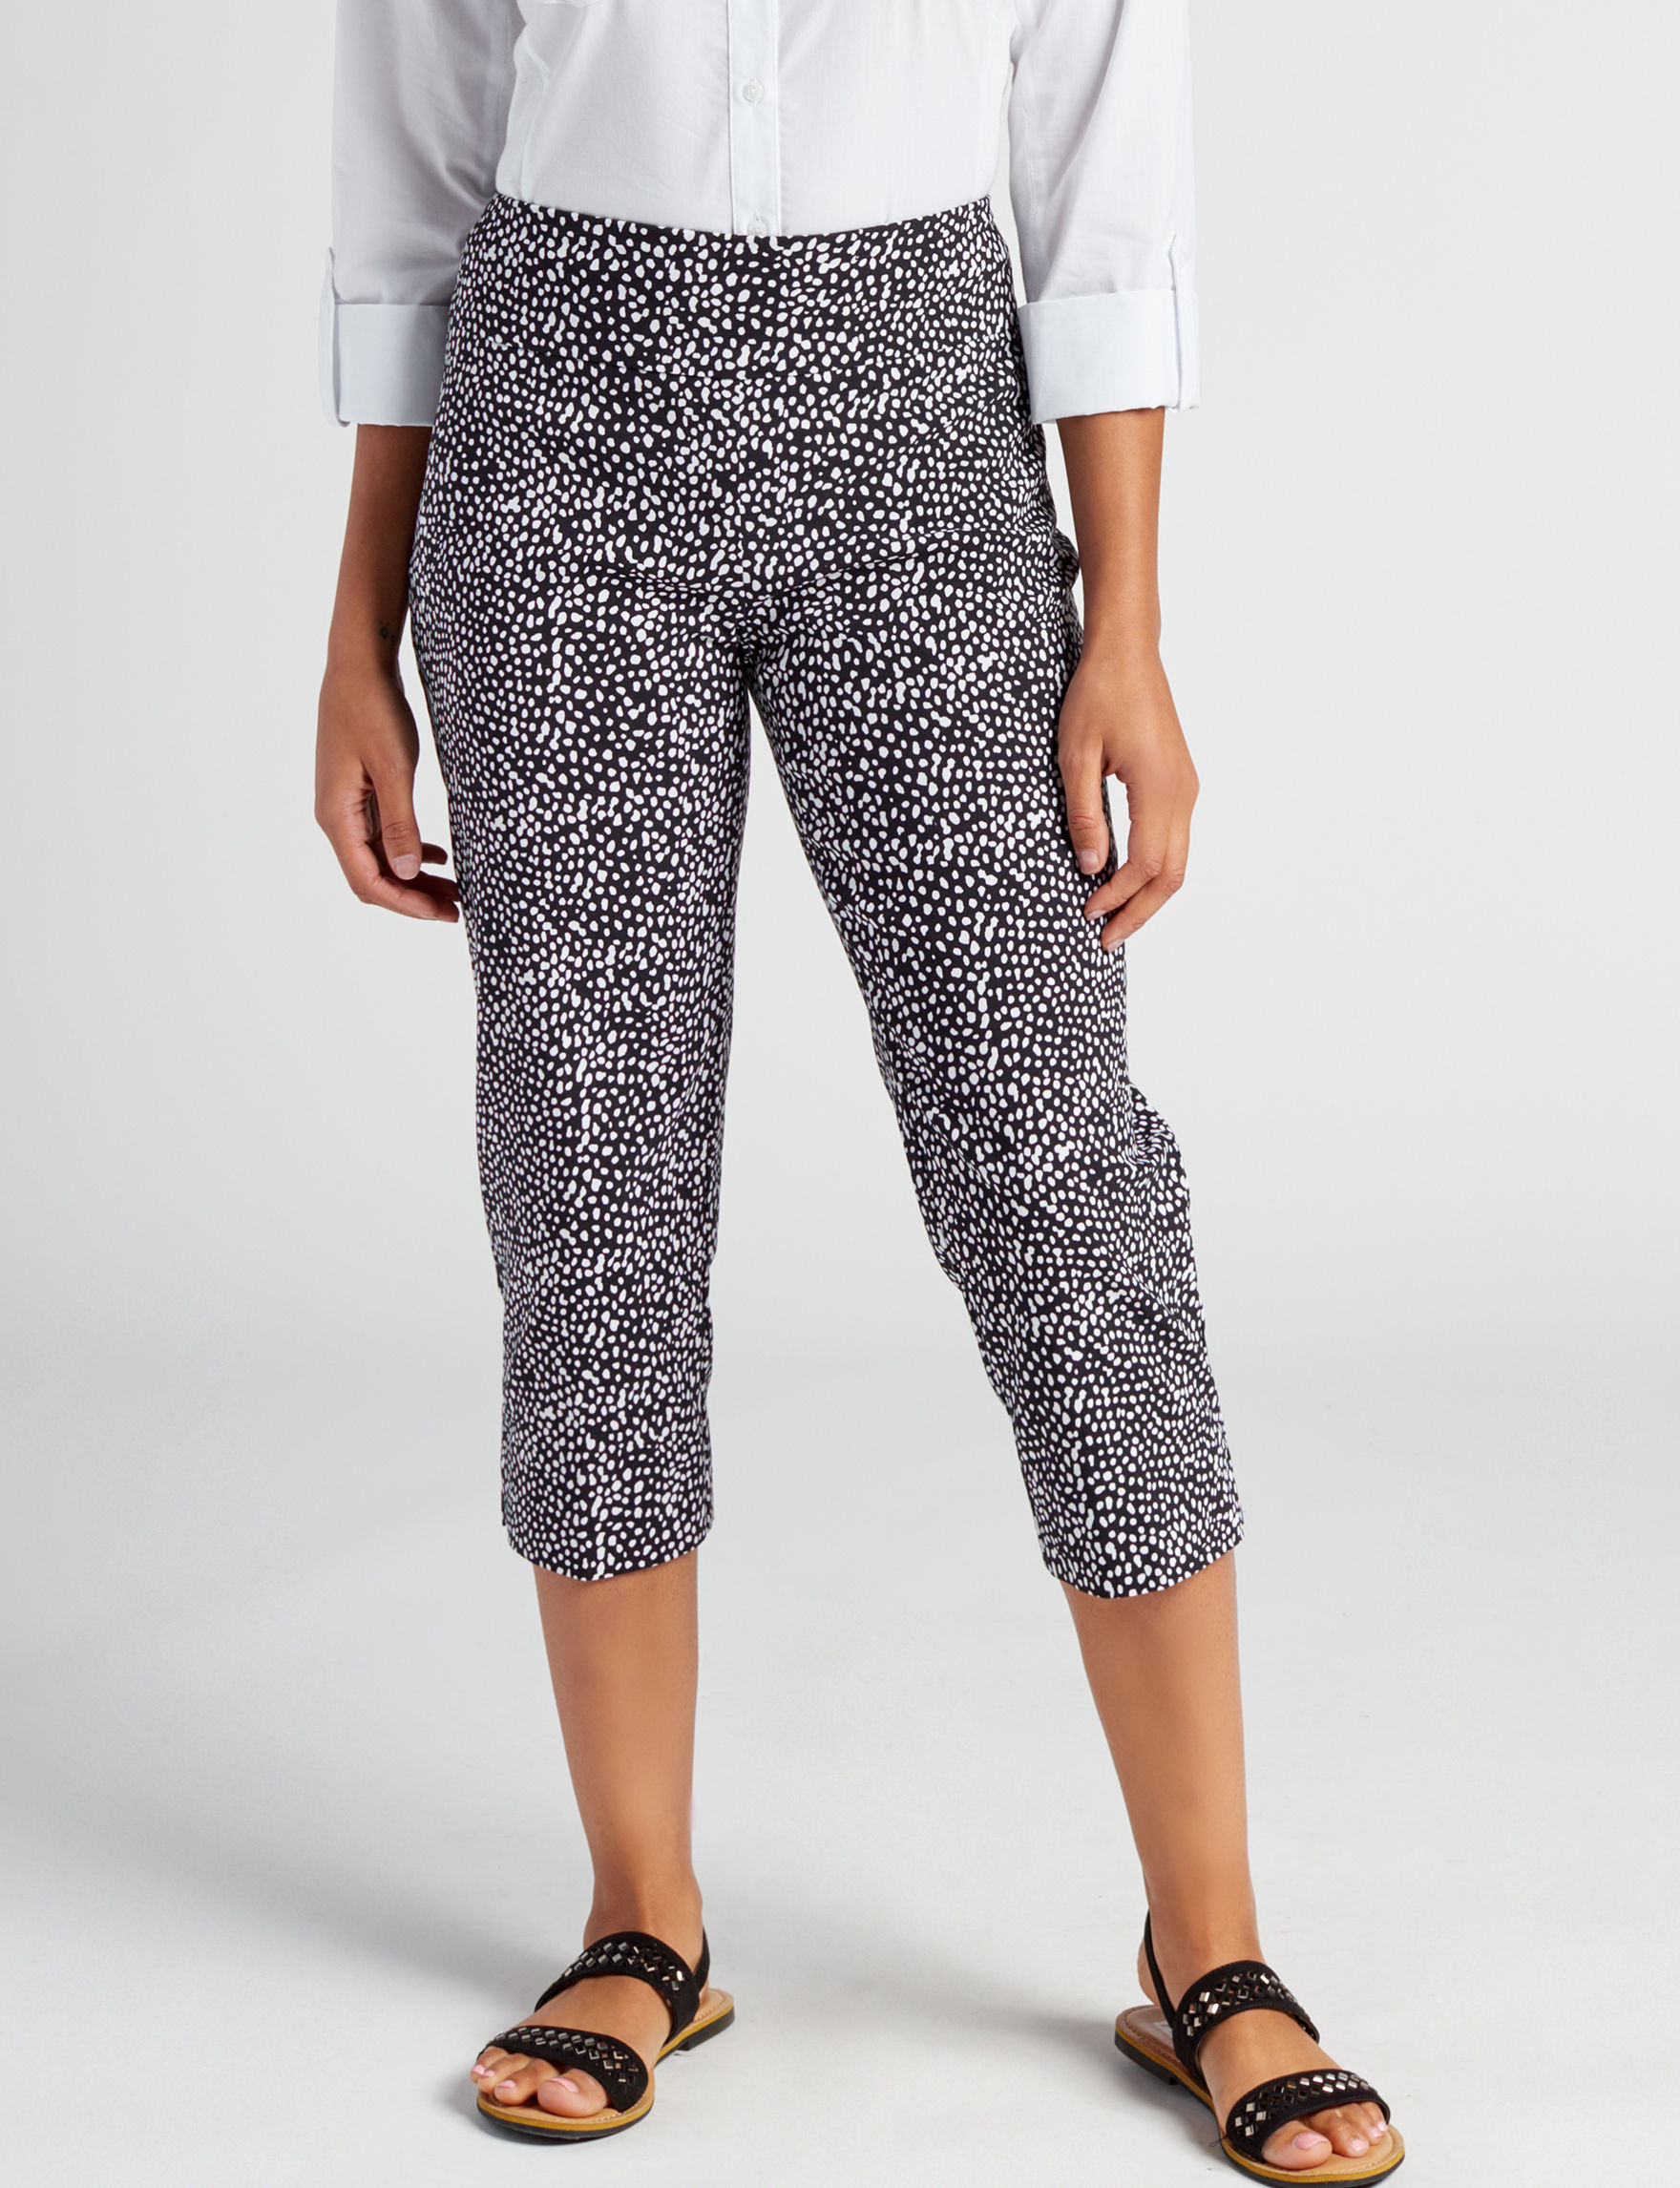 Valerie Stevens Black / White Capris & Crops Stretch